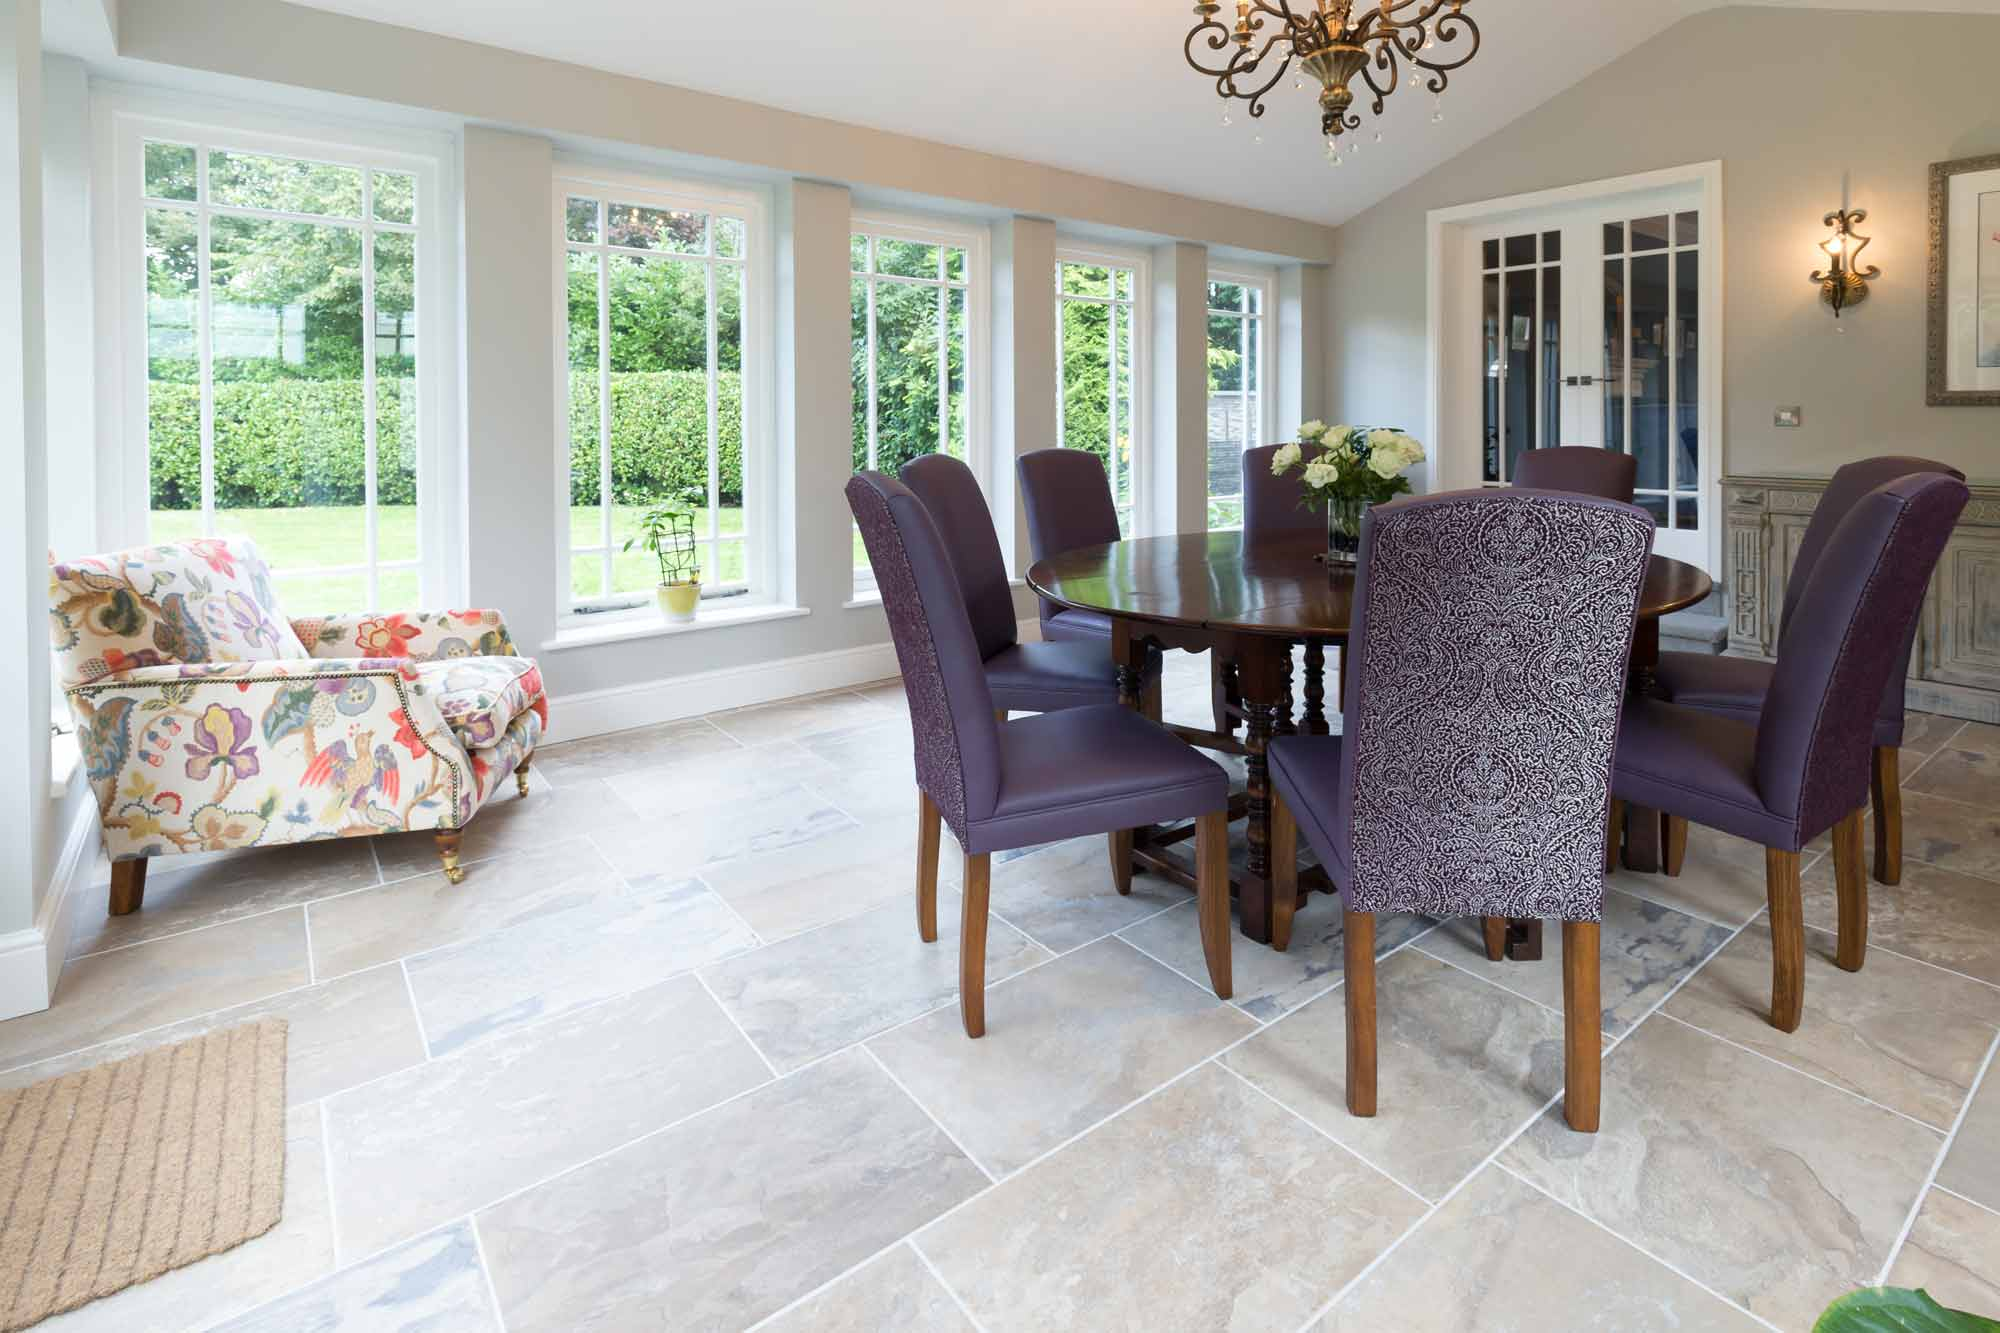 dining table and chairs, stone flooring, chandelier, orangery glazing, garden room